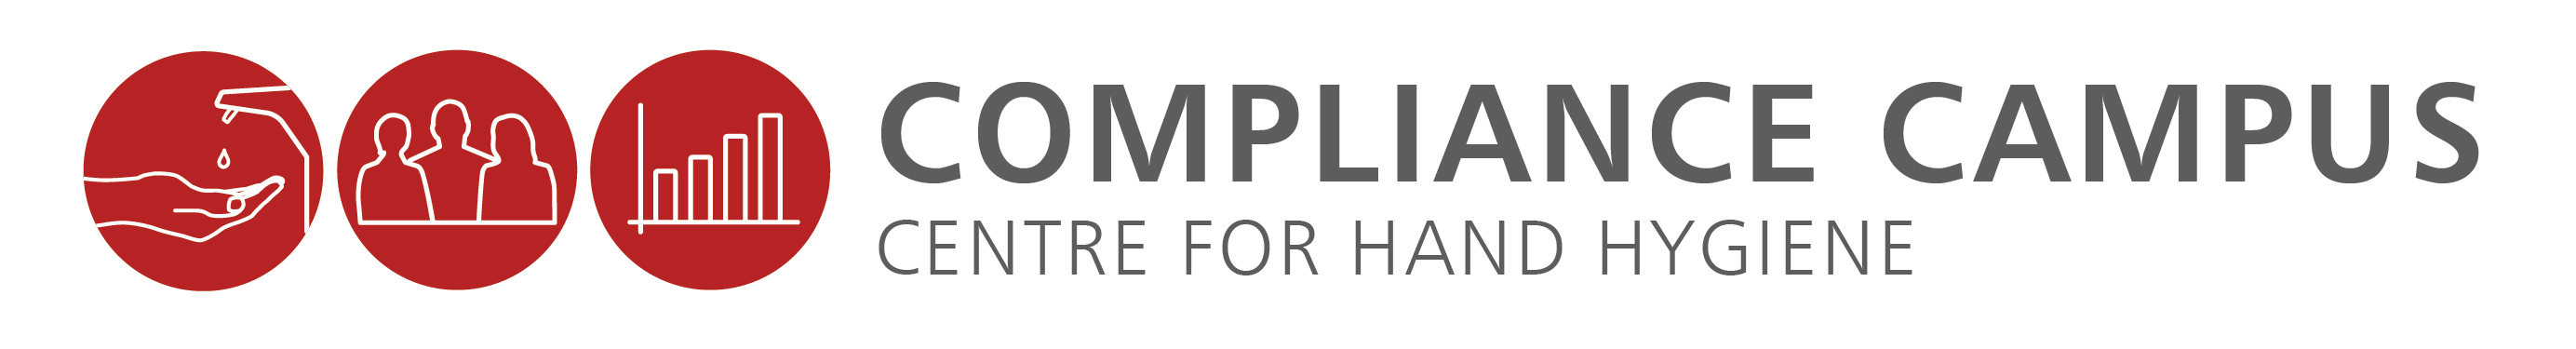 Compliance Campus